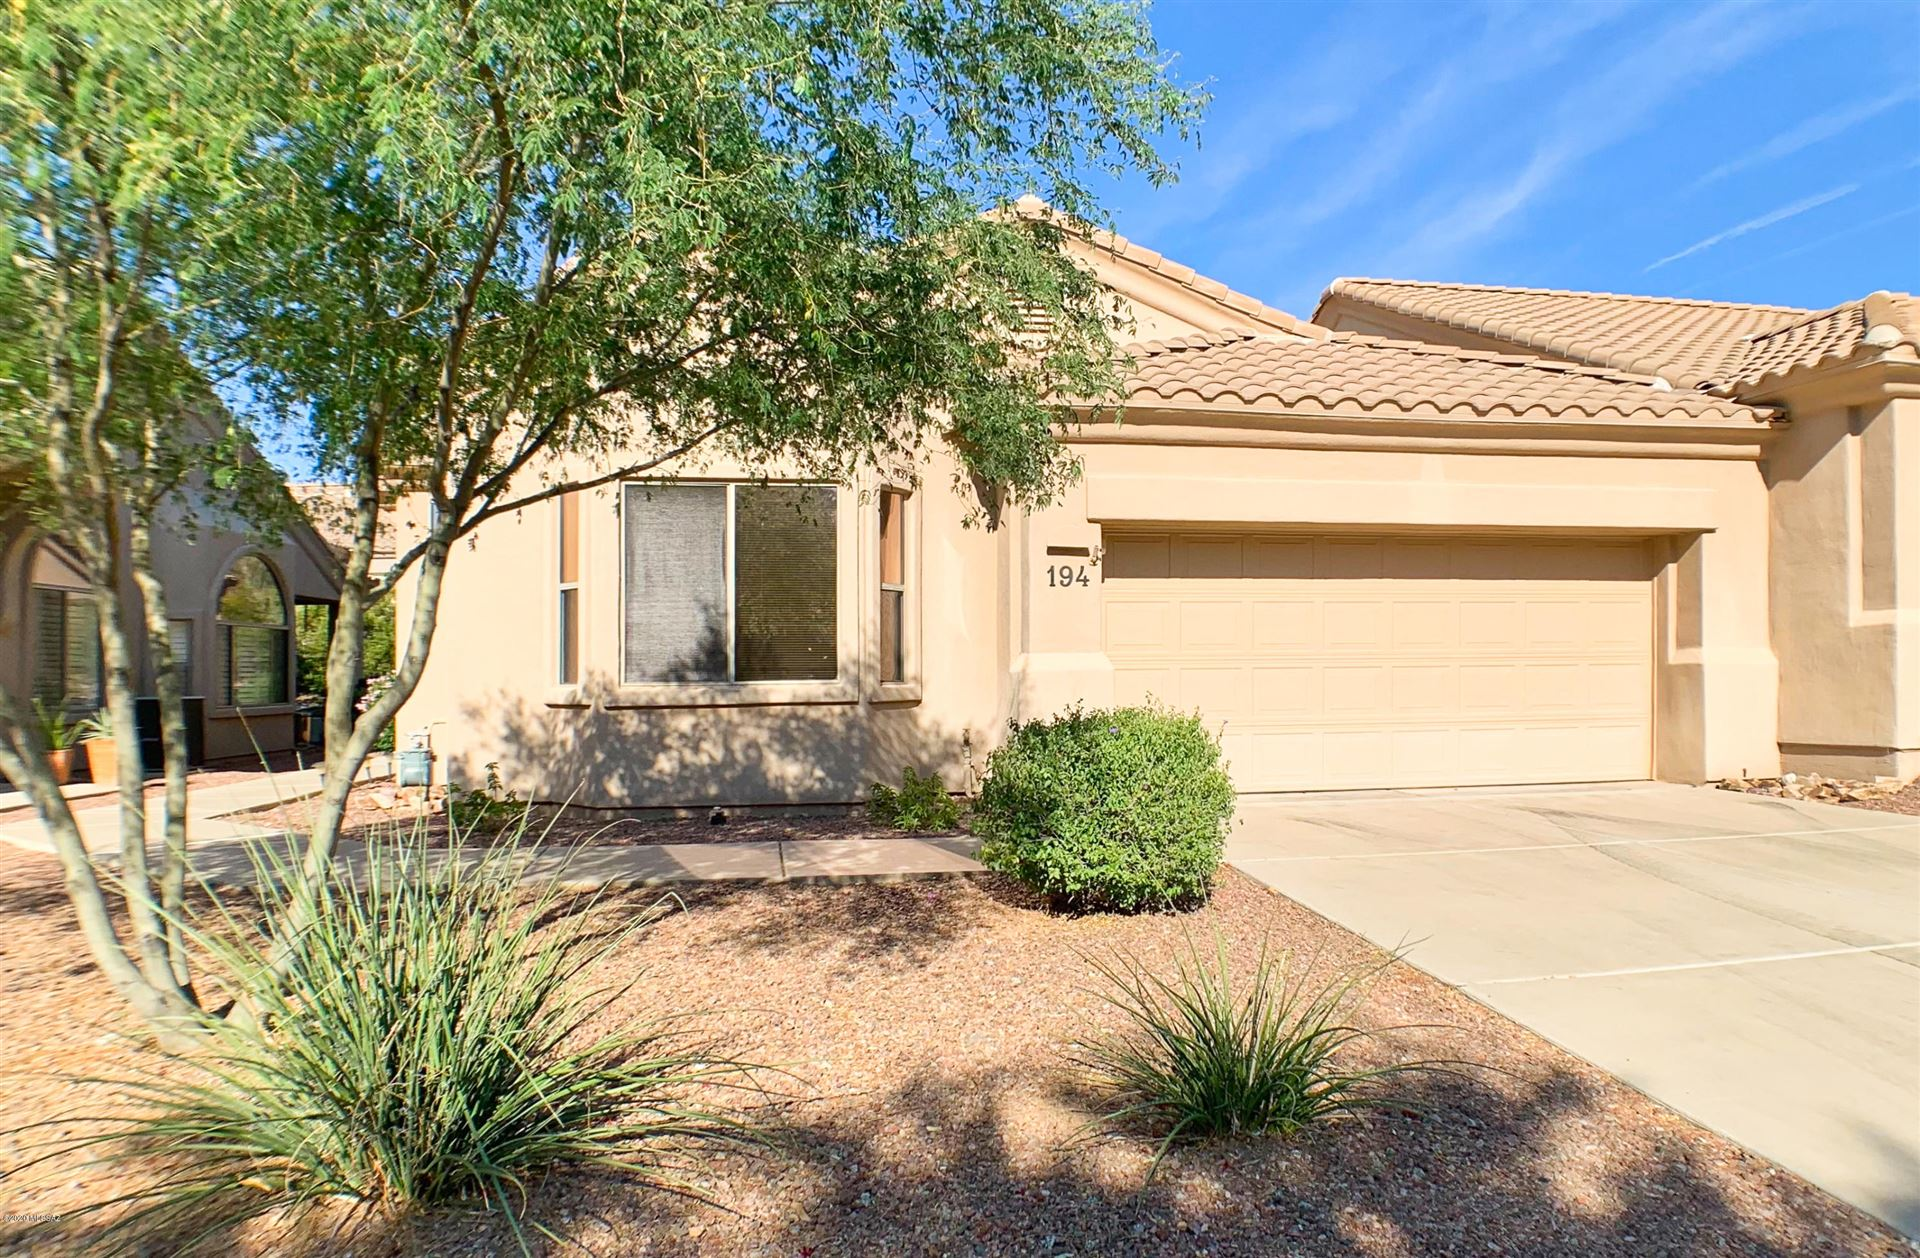 13401 N Rancho Vistoso Boulevard #194, Oro Valley, AZ 85755 - #: 22011849